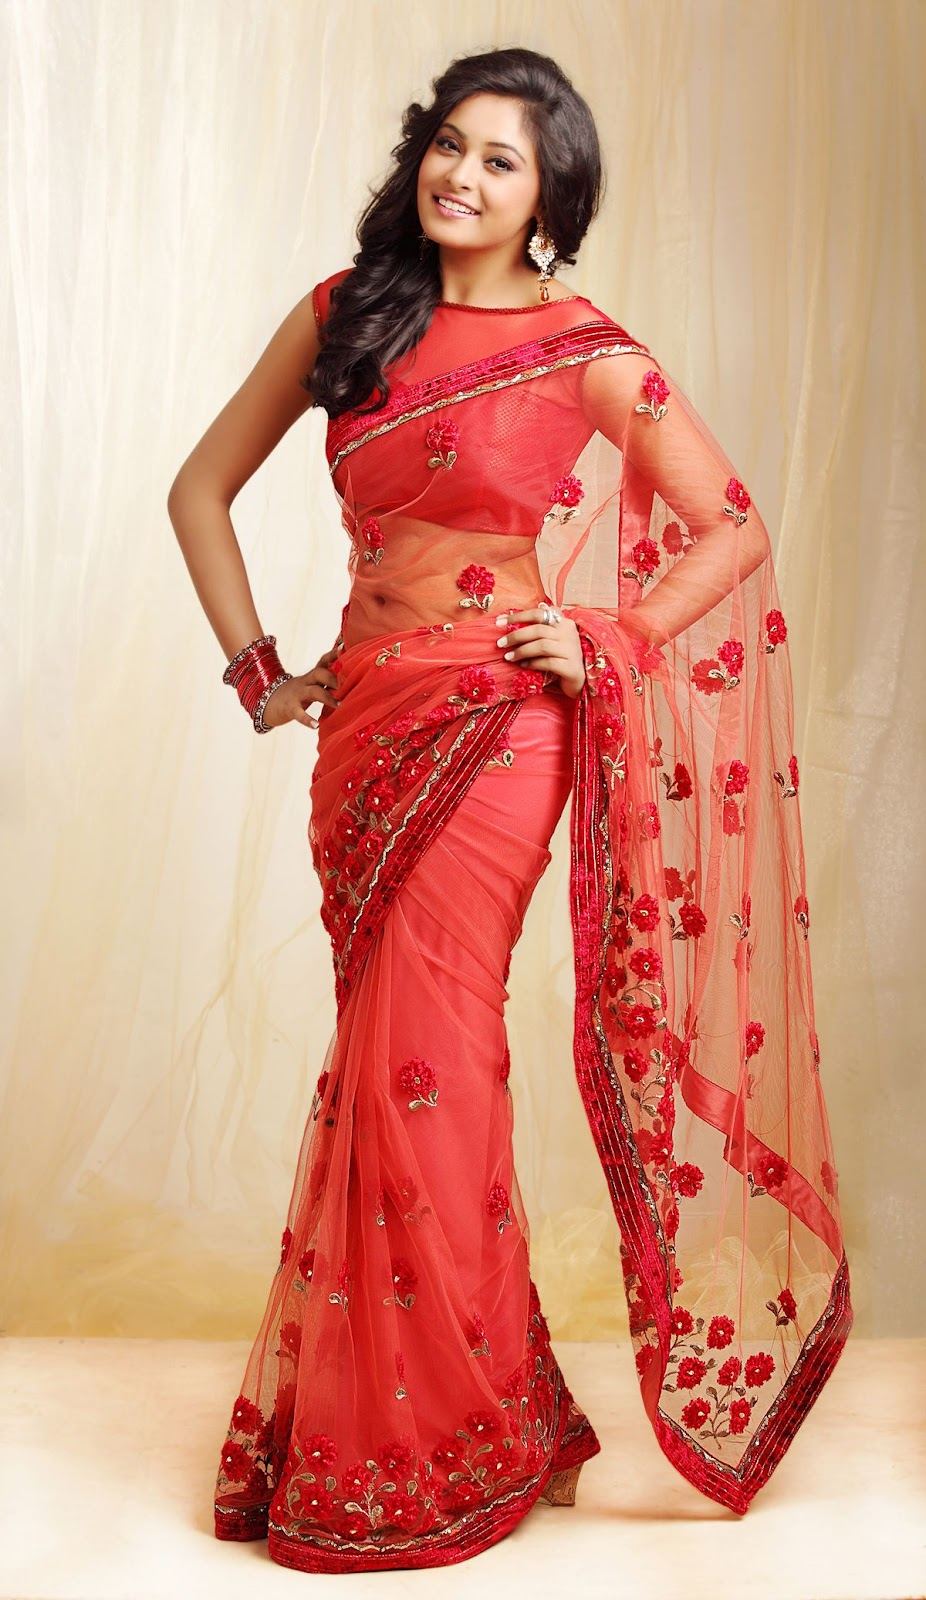 Actress Arundhati In Red Saree With Boat Neck Blouse